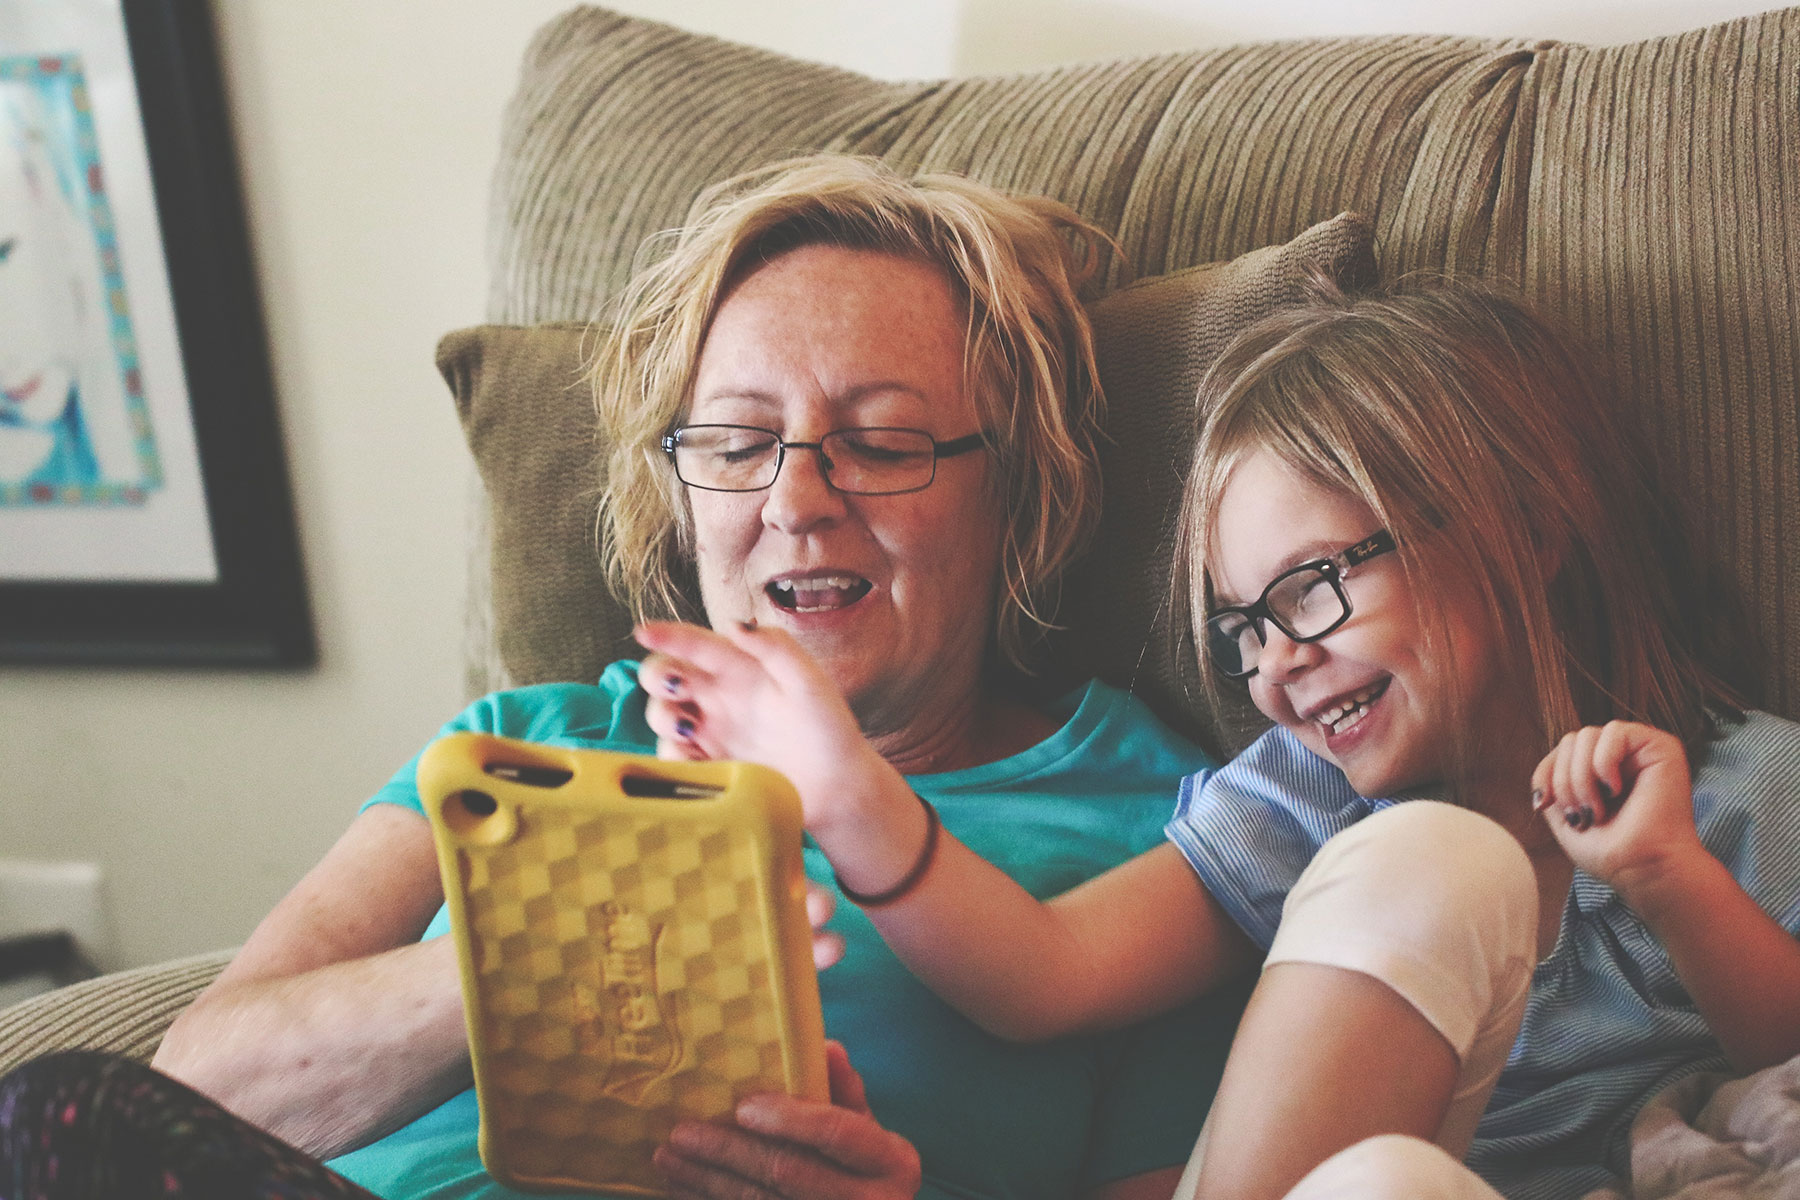 Keeping Kids Digitally Connected